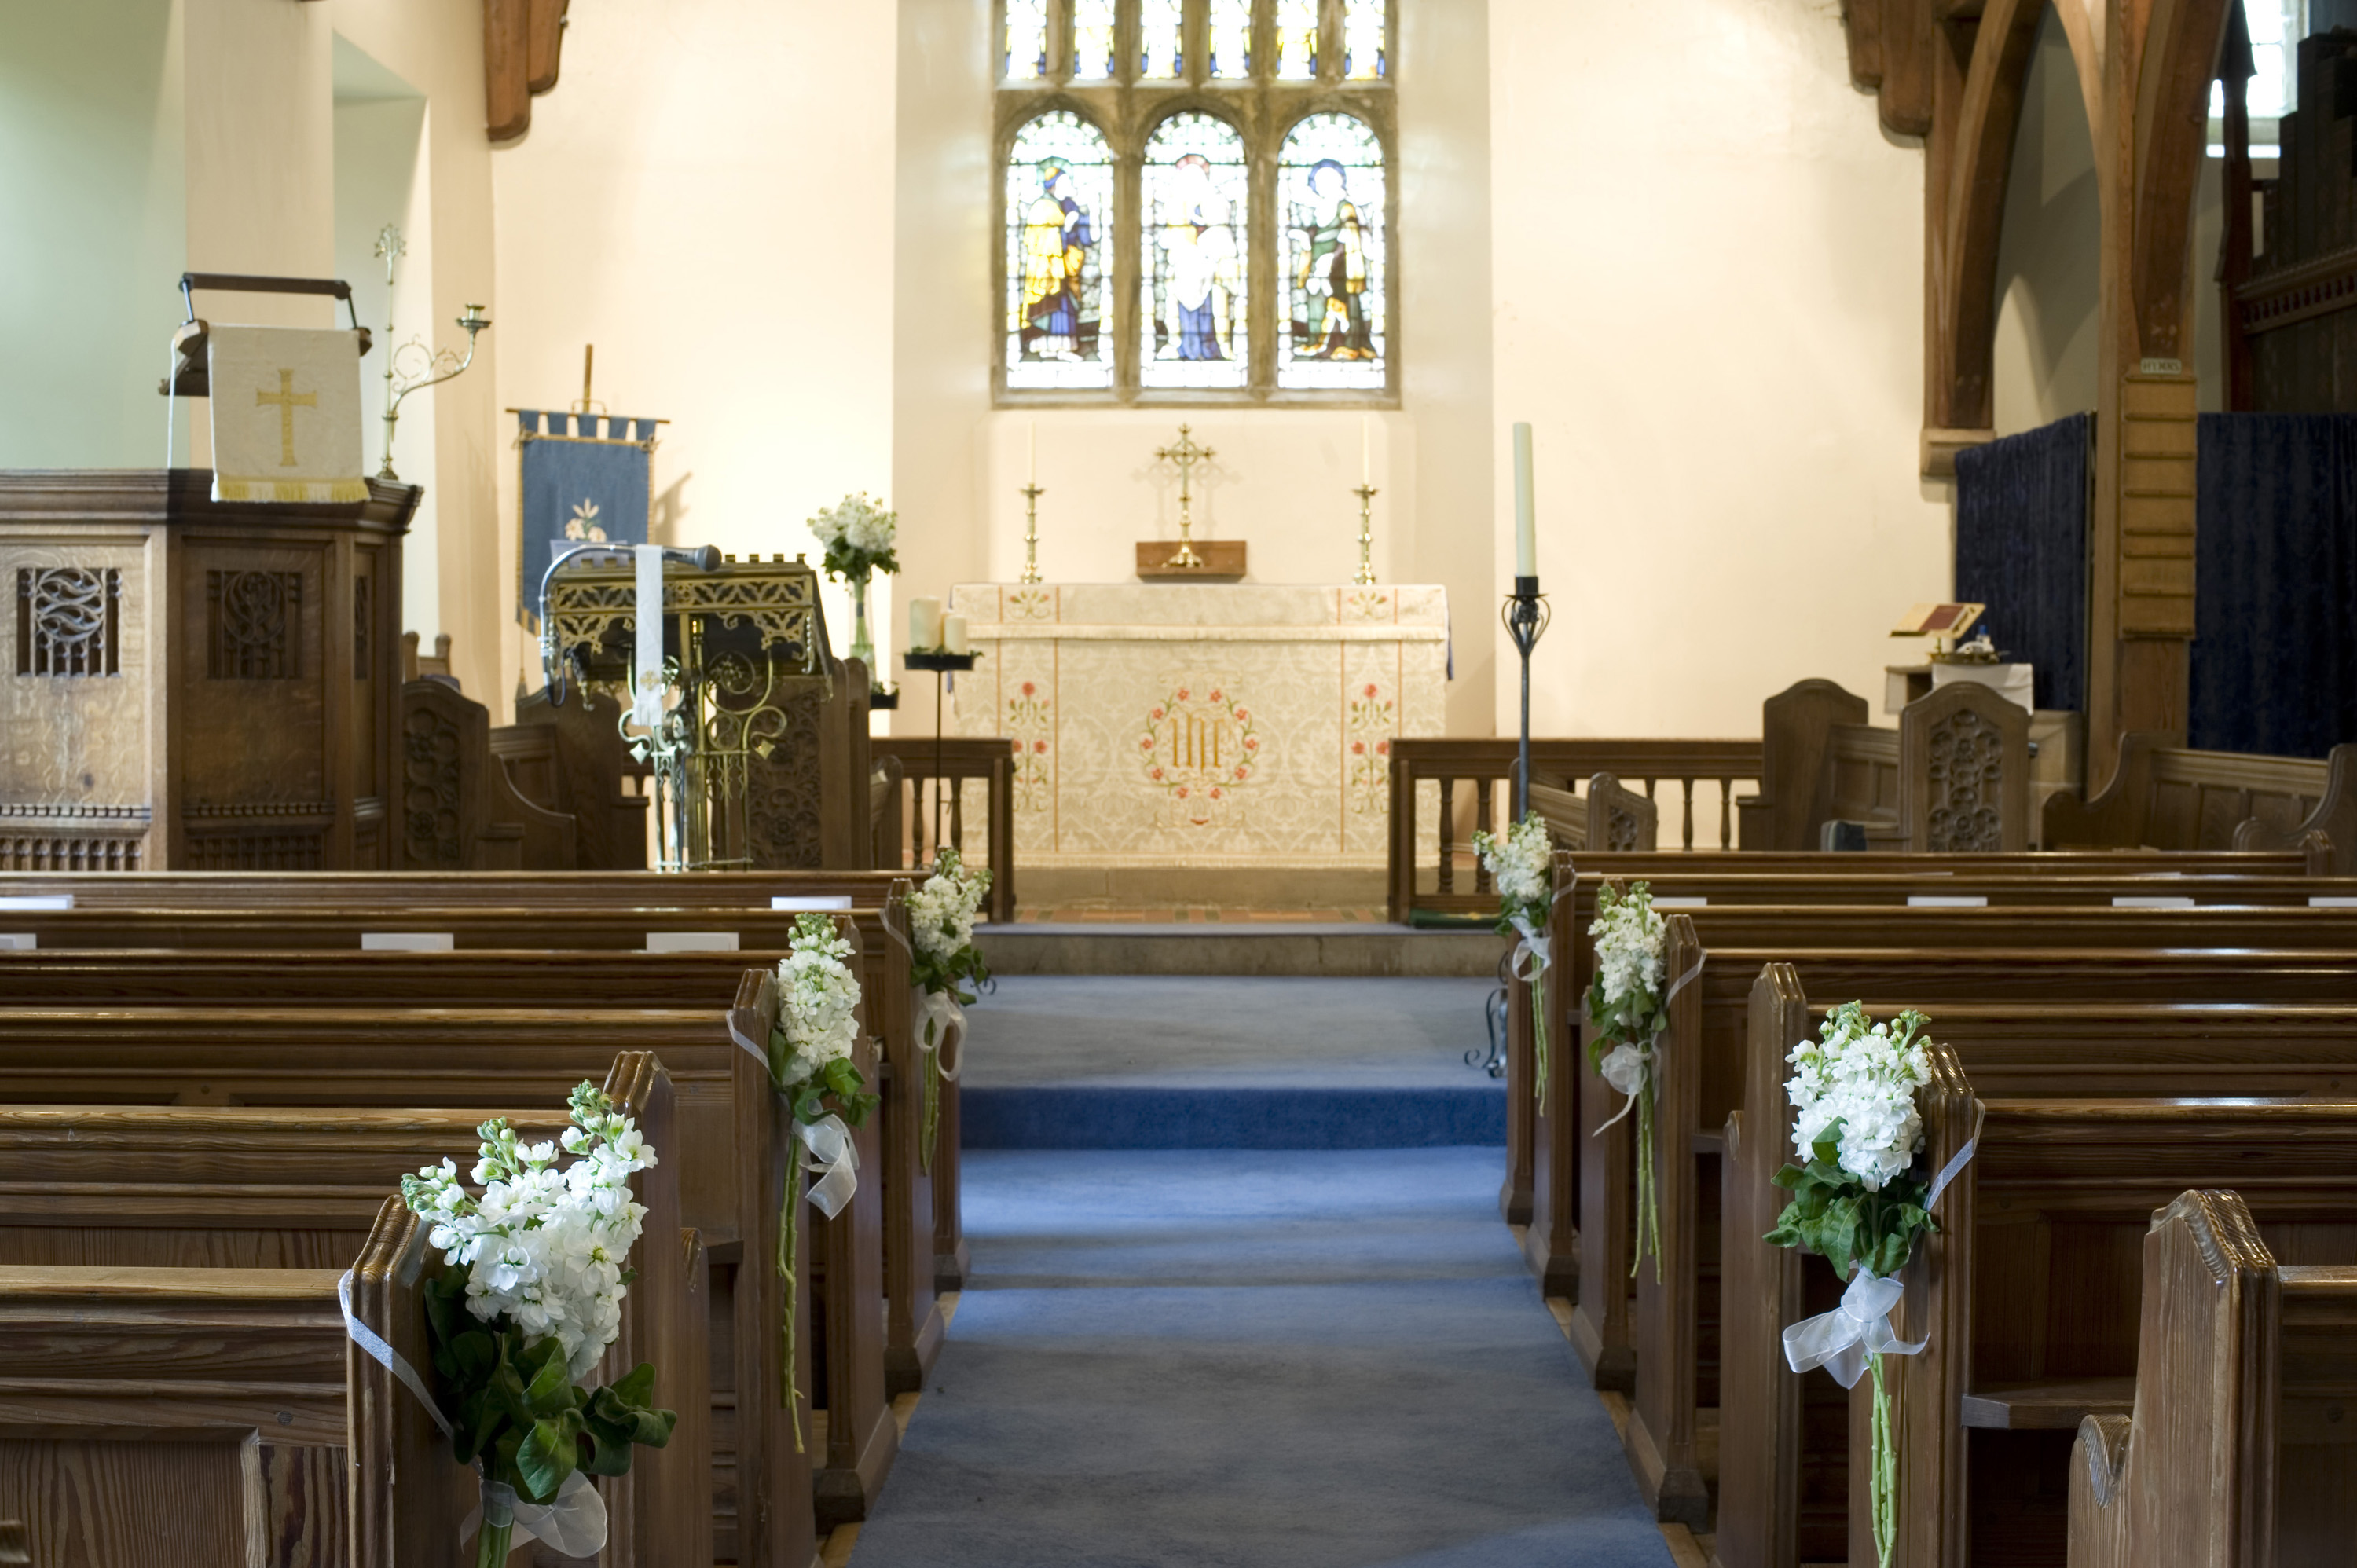 spring_time_church.jpg - Springtime church aisle with wooden pews decorated with white spring blossom in a small country church